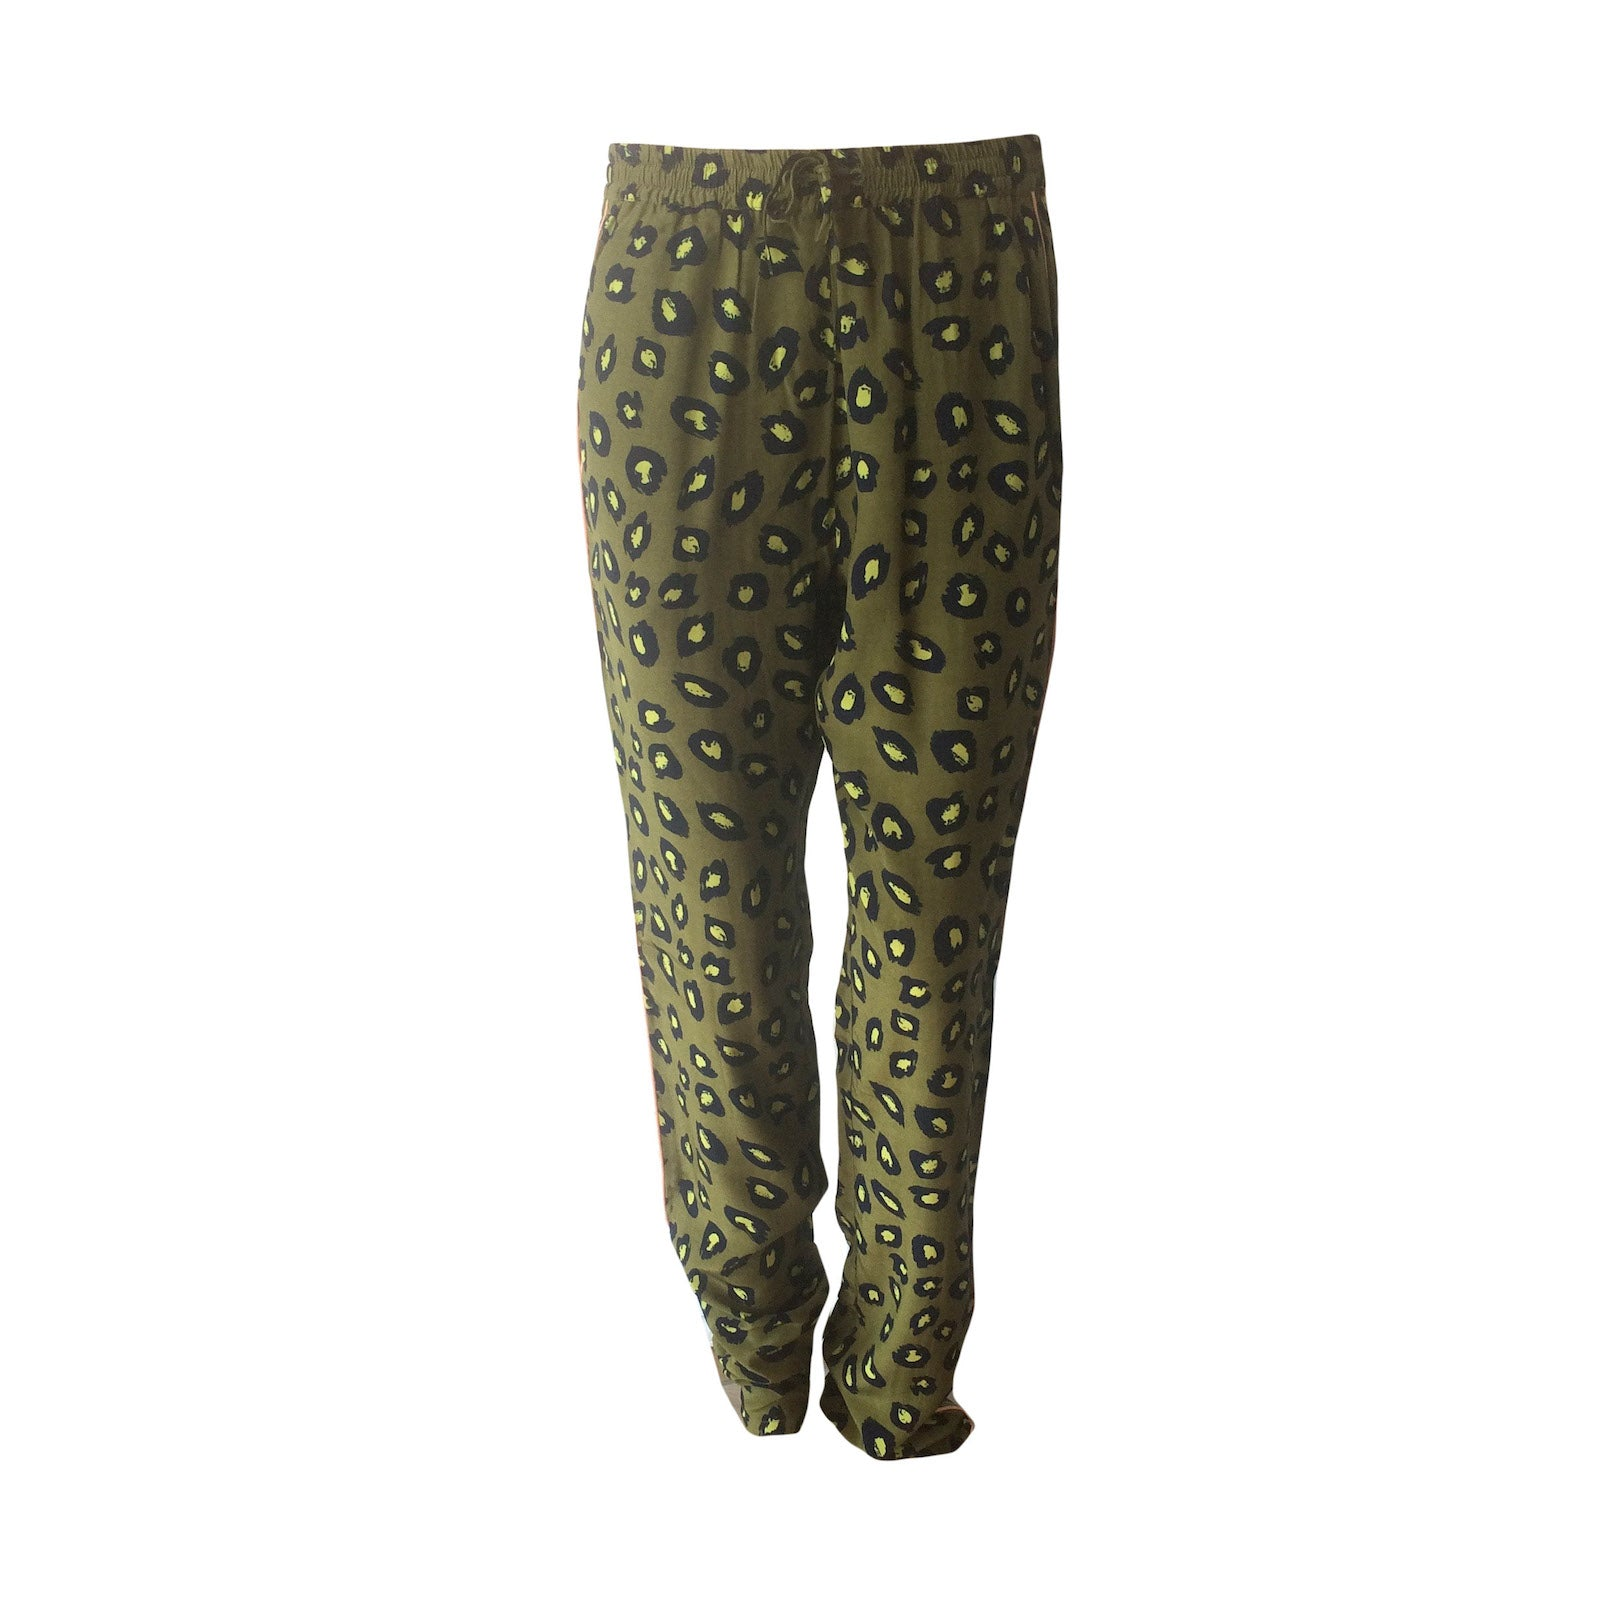 These jungle print soft relaxed pants by Dutch label Scotch R